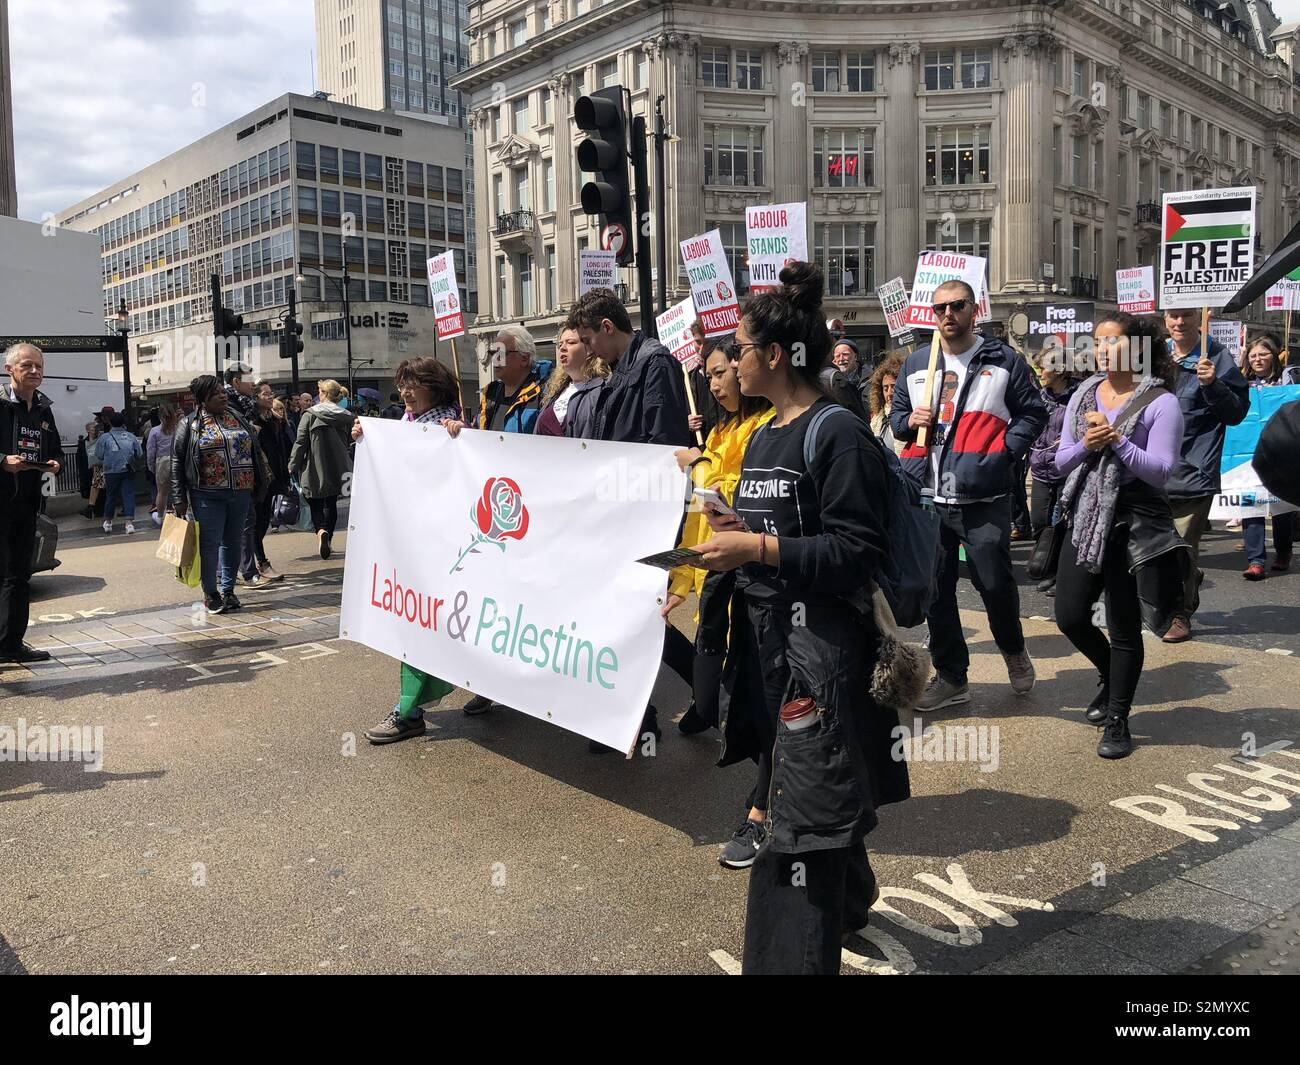 May 11, 2019. Oxford Circus, London. Labour party supporters take out demonstration against the occupation of Palestine. - Stock Image